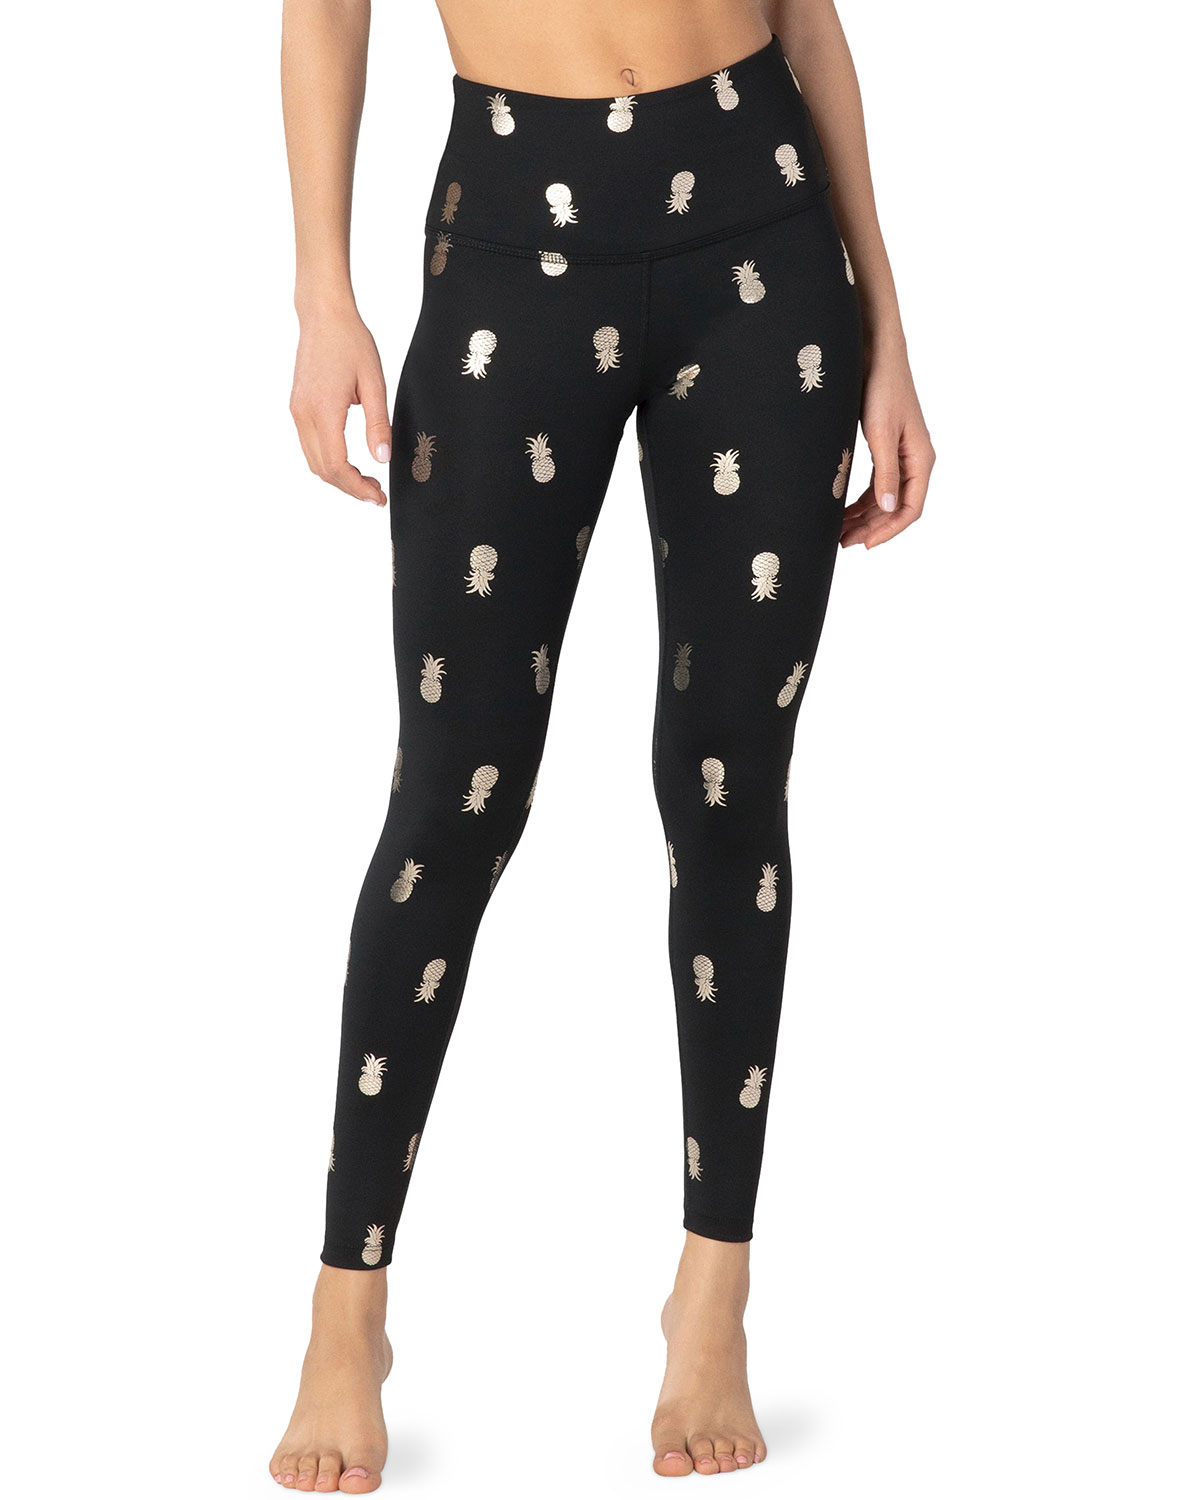 Beyond Yoga Pants PINEAPPLE HIGH-WAIST MIDI LEGGINGS